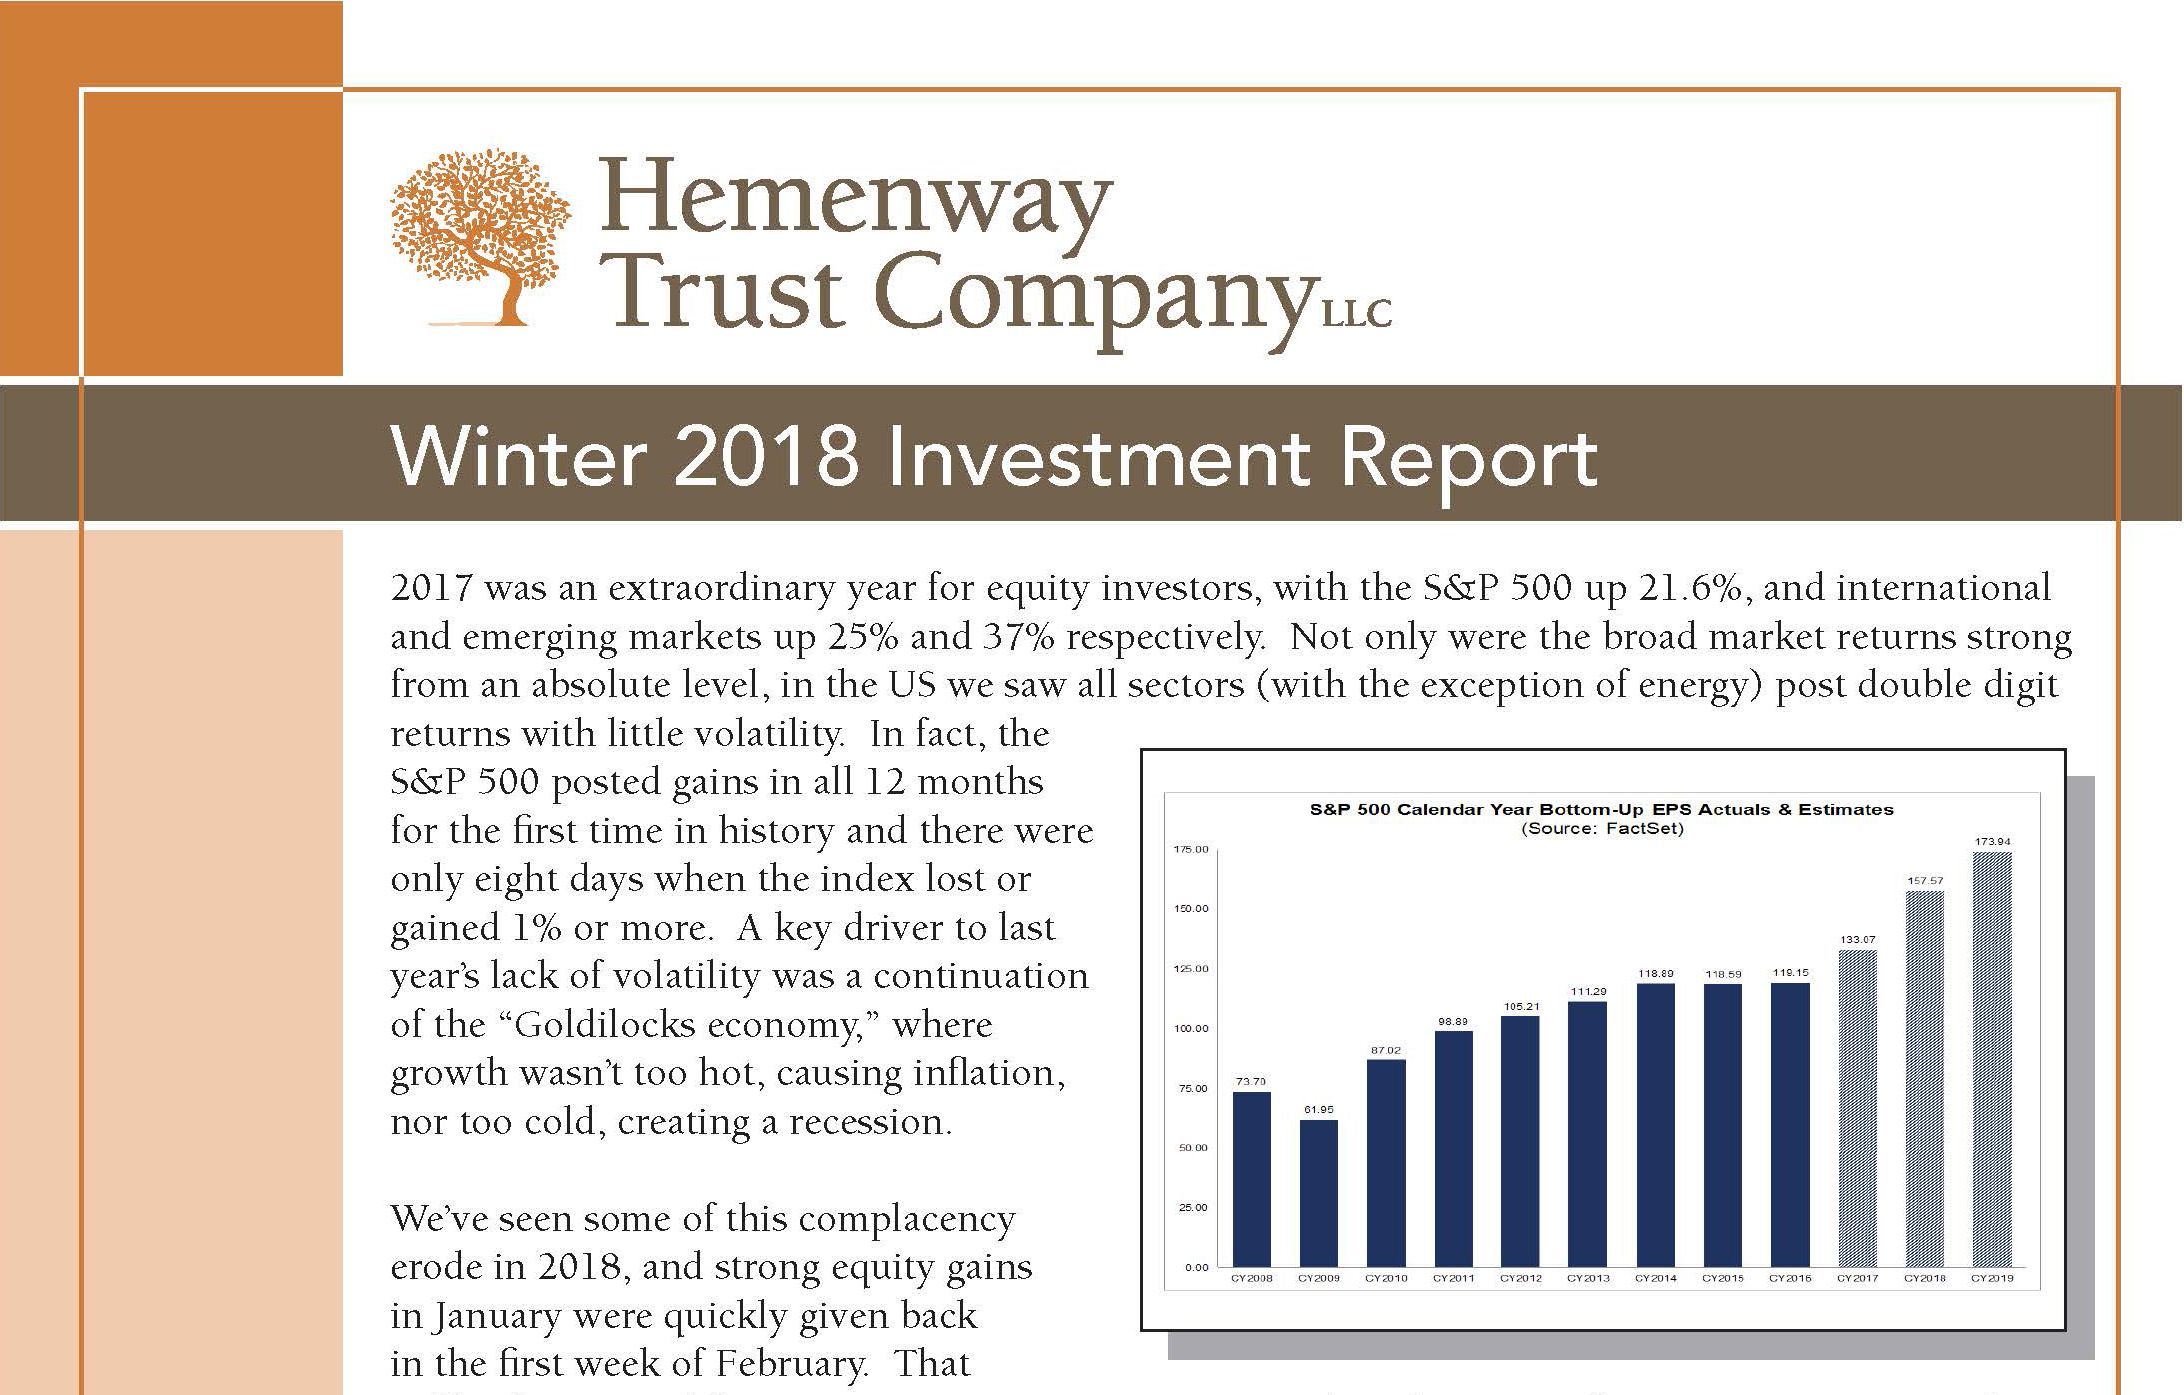 Winter 2018 Investment Report